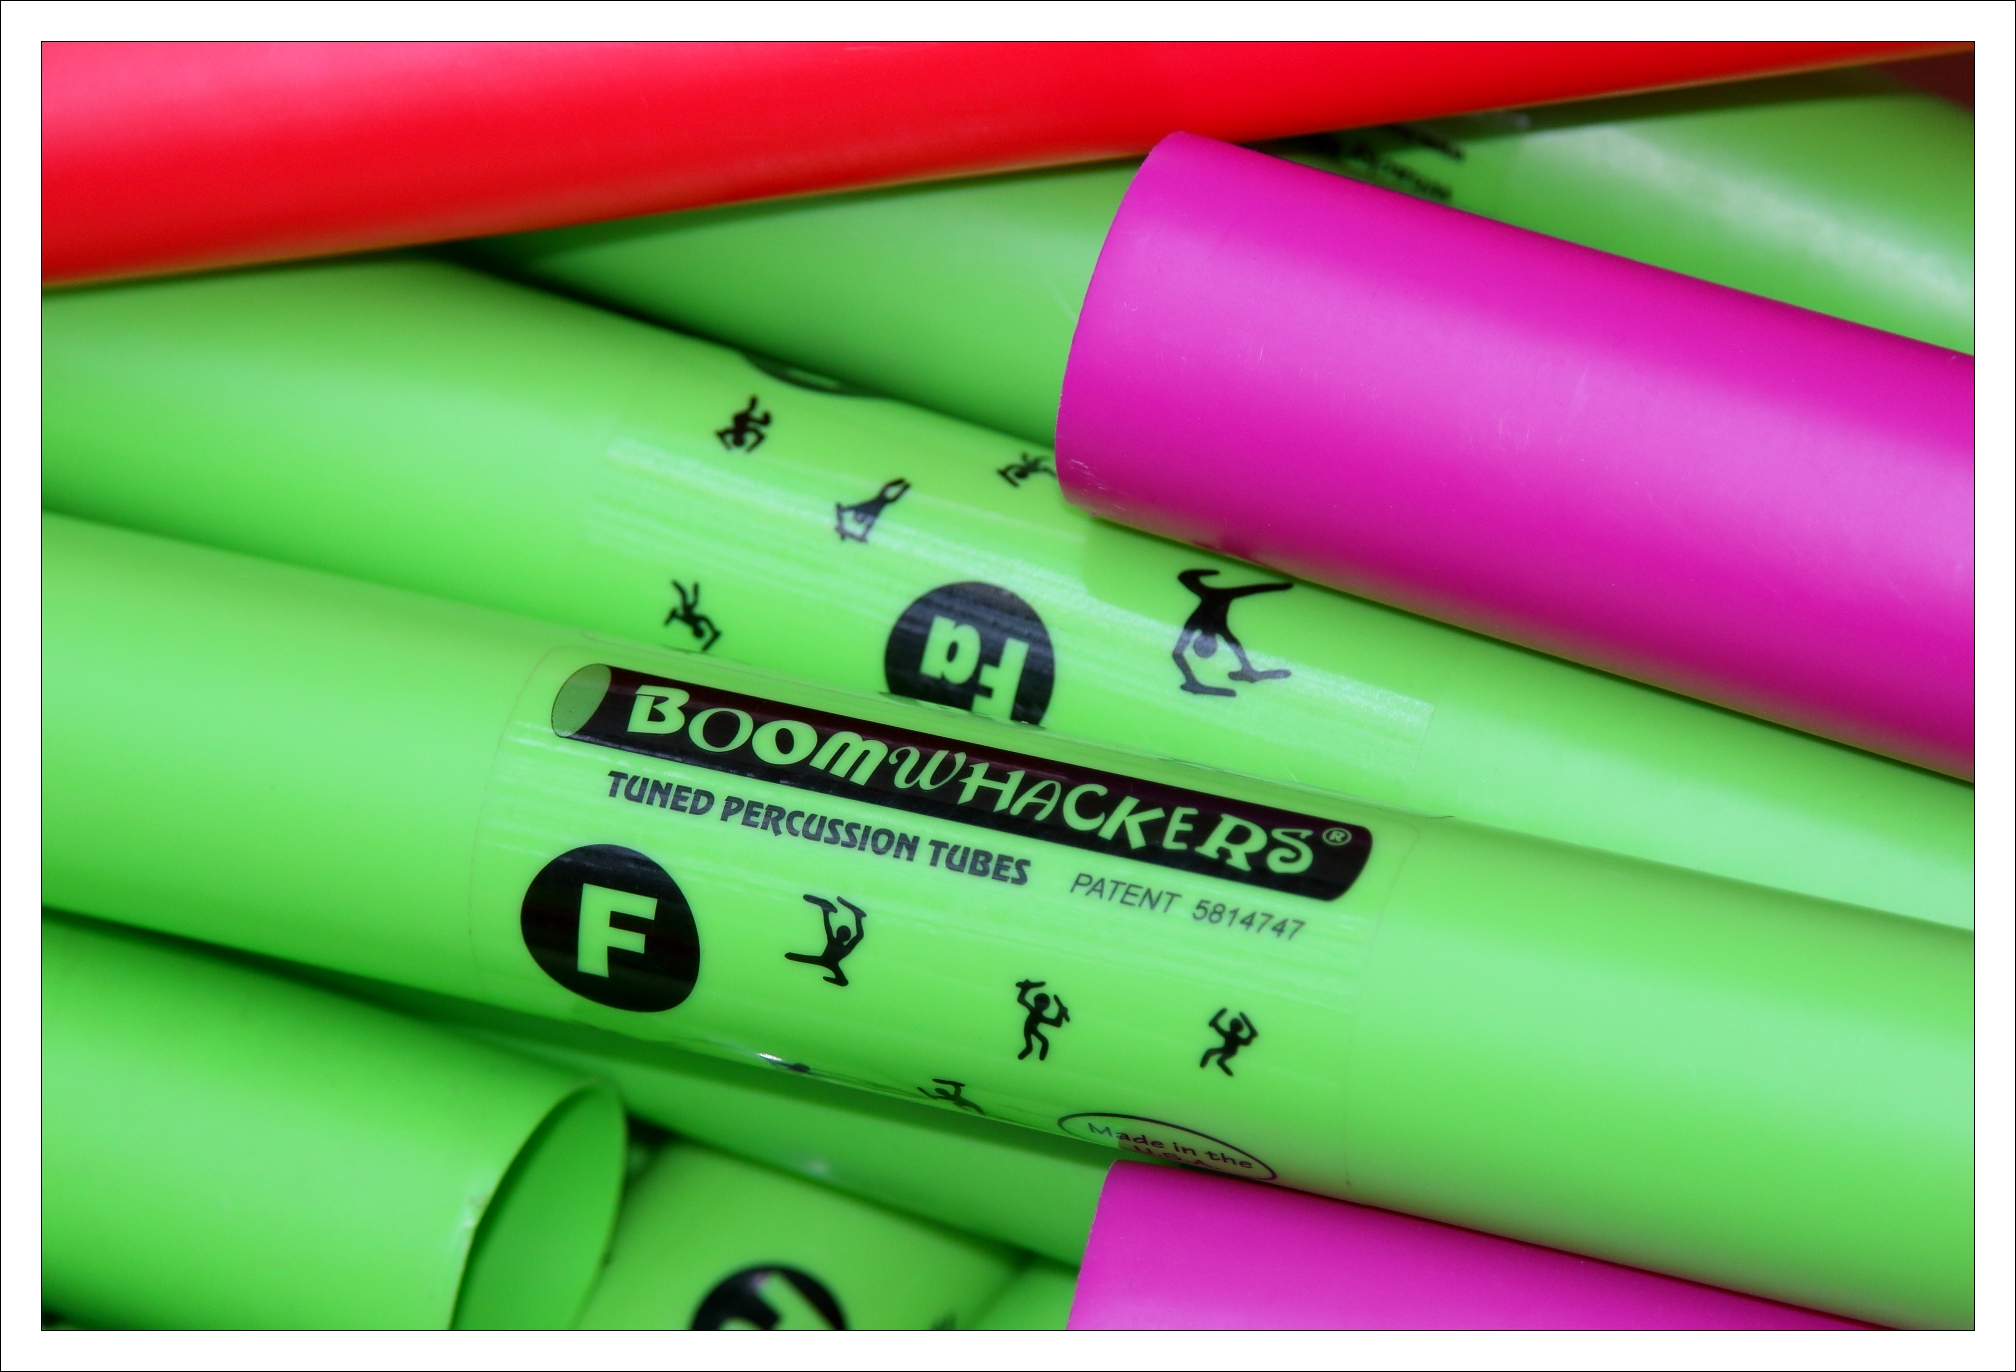 Boomwhackers (Flickr Creative Commons)